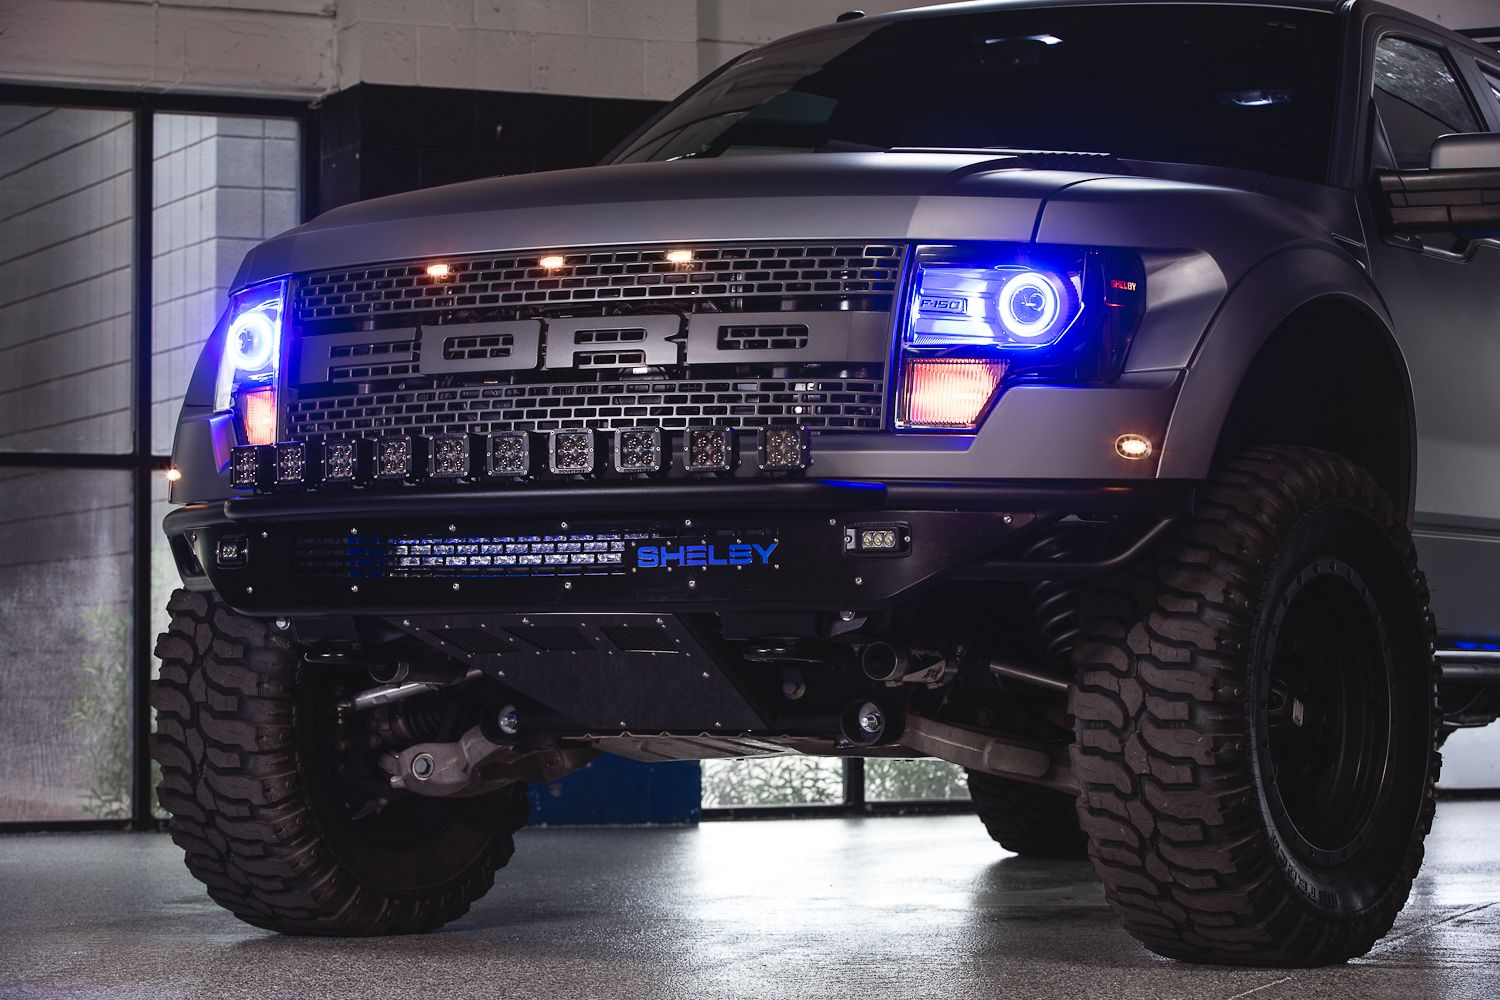 Take your raptor to the next level with some add